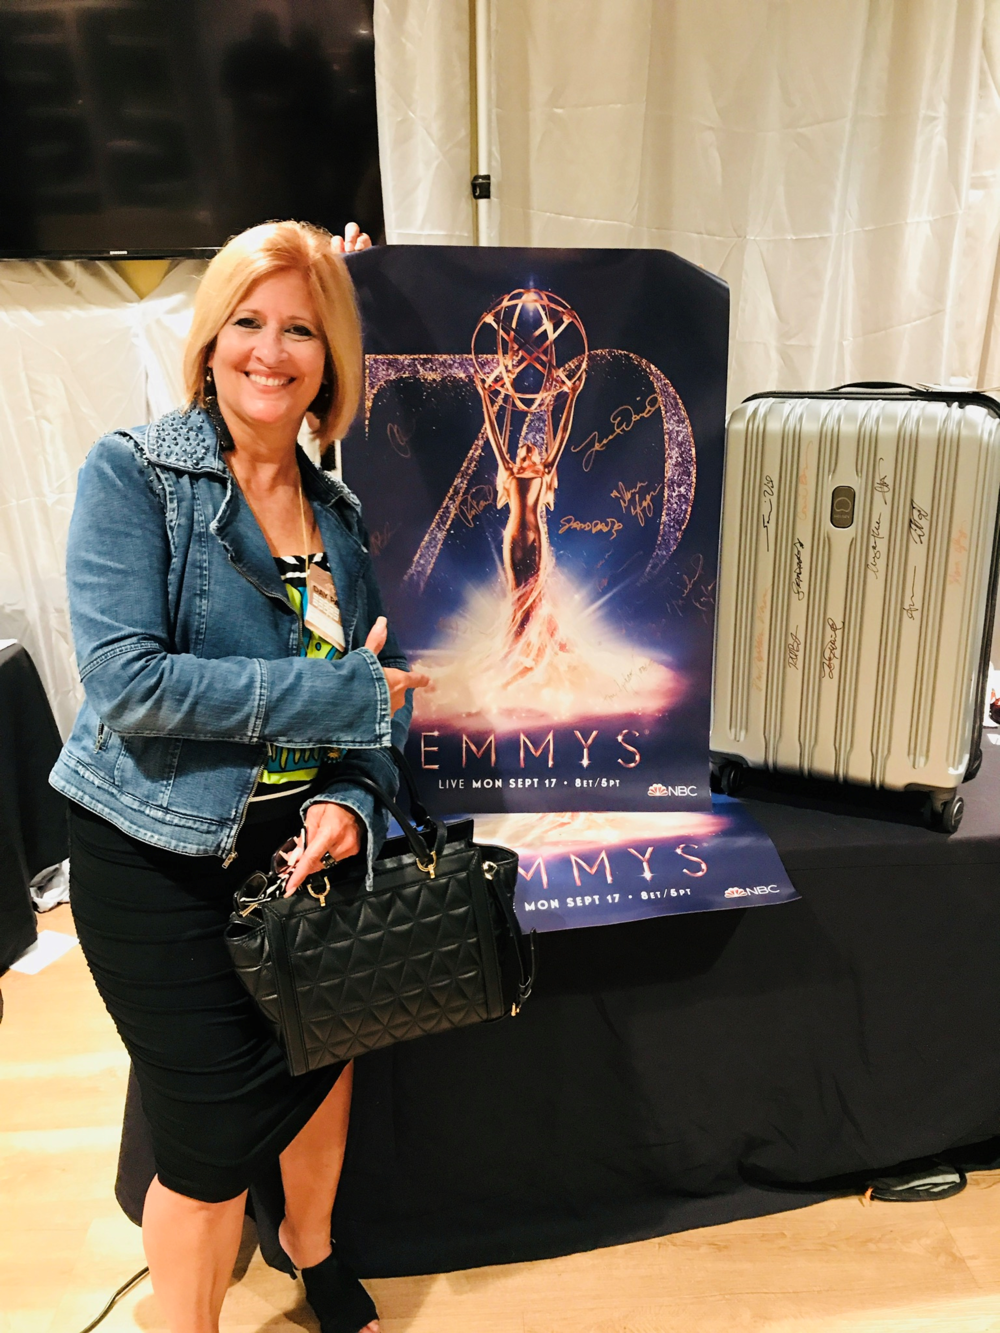 A backstage pass to the official Event Awards at the Microsoft Theatre and preview of award-winning signatures on additional Celeb Poster & Swag Bag items! Great to see the behind the scenes!!